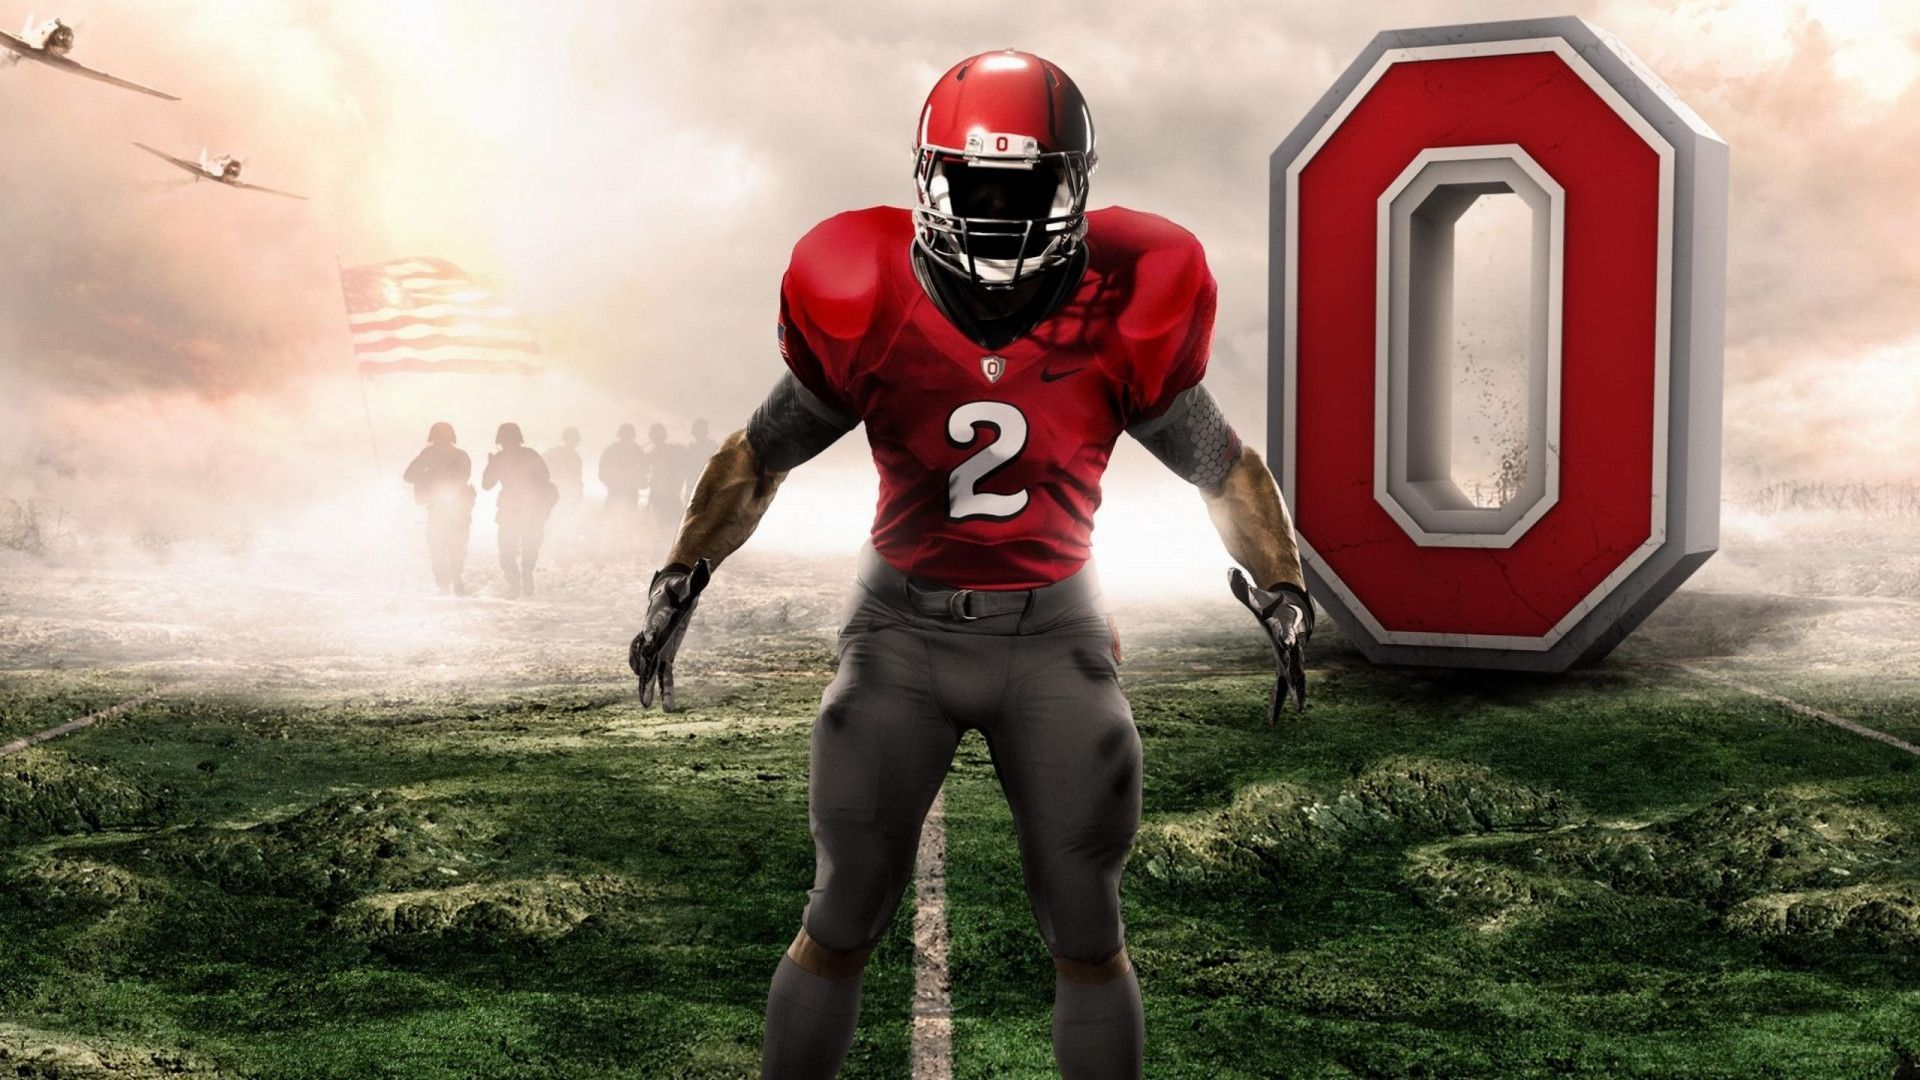 College Football Wallpapers Wallpaper Cave Ohio State Buckeyes Football Ohio State Football Players Ohio State Wallpaper